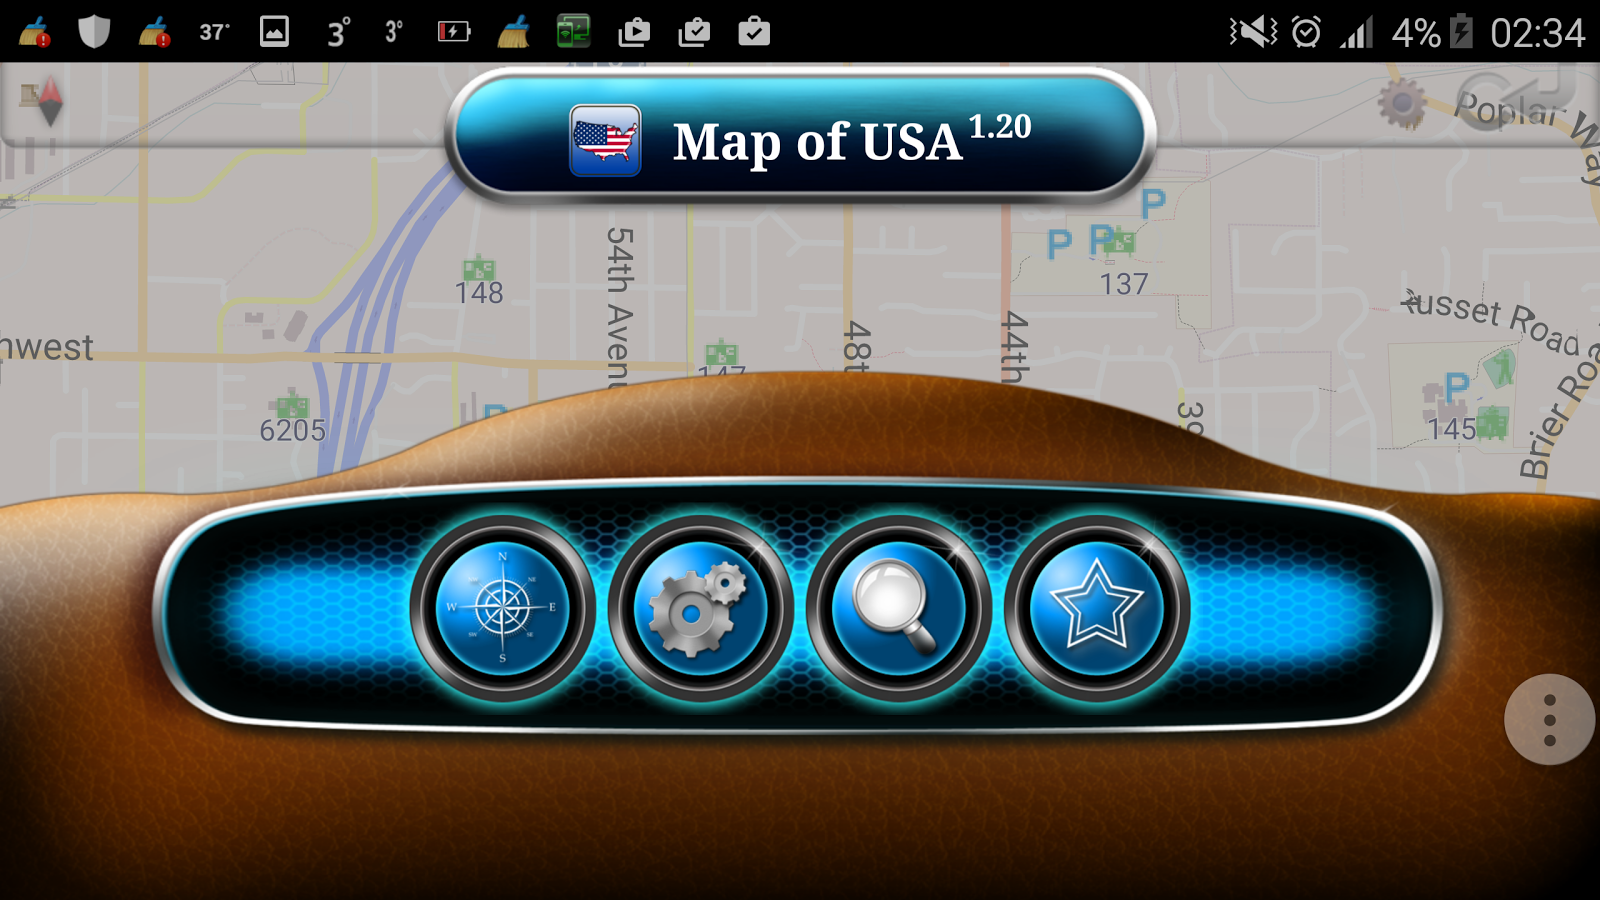 Map Of USA Android Apps On Google Play - Google map america east coast